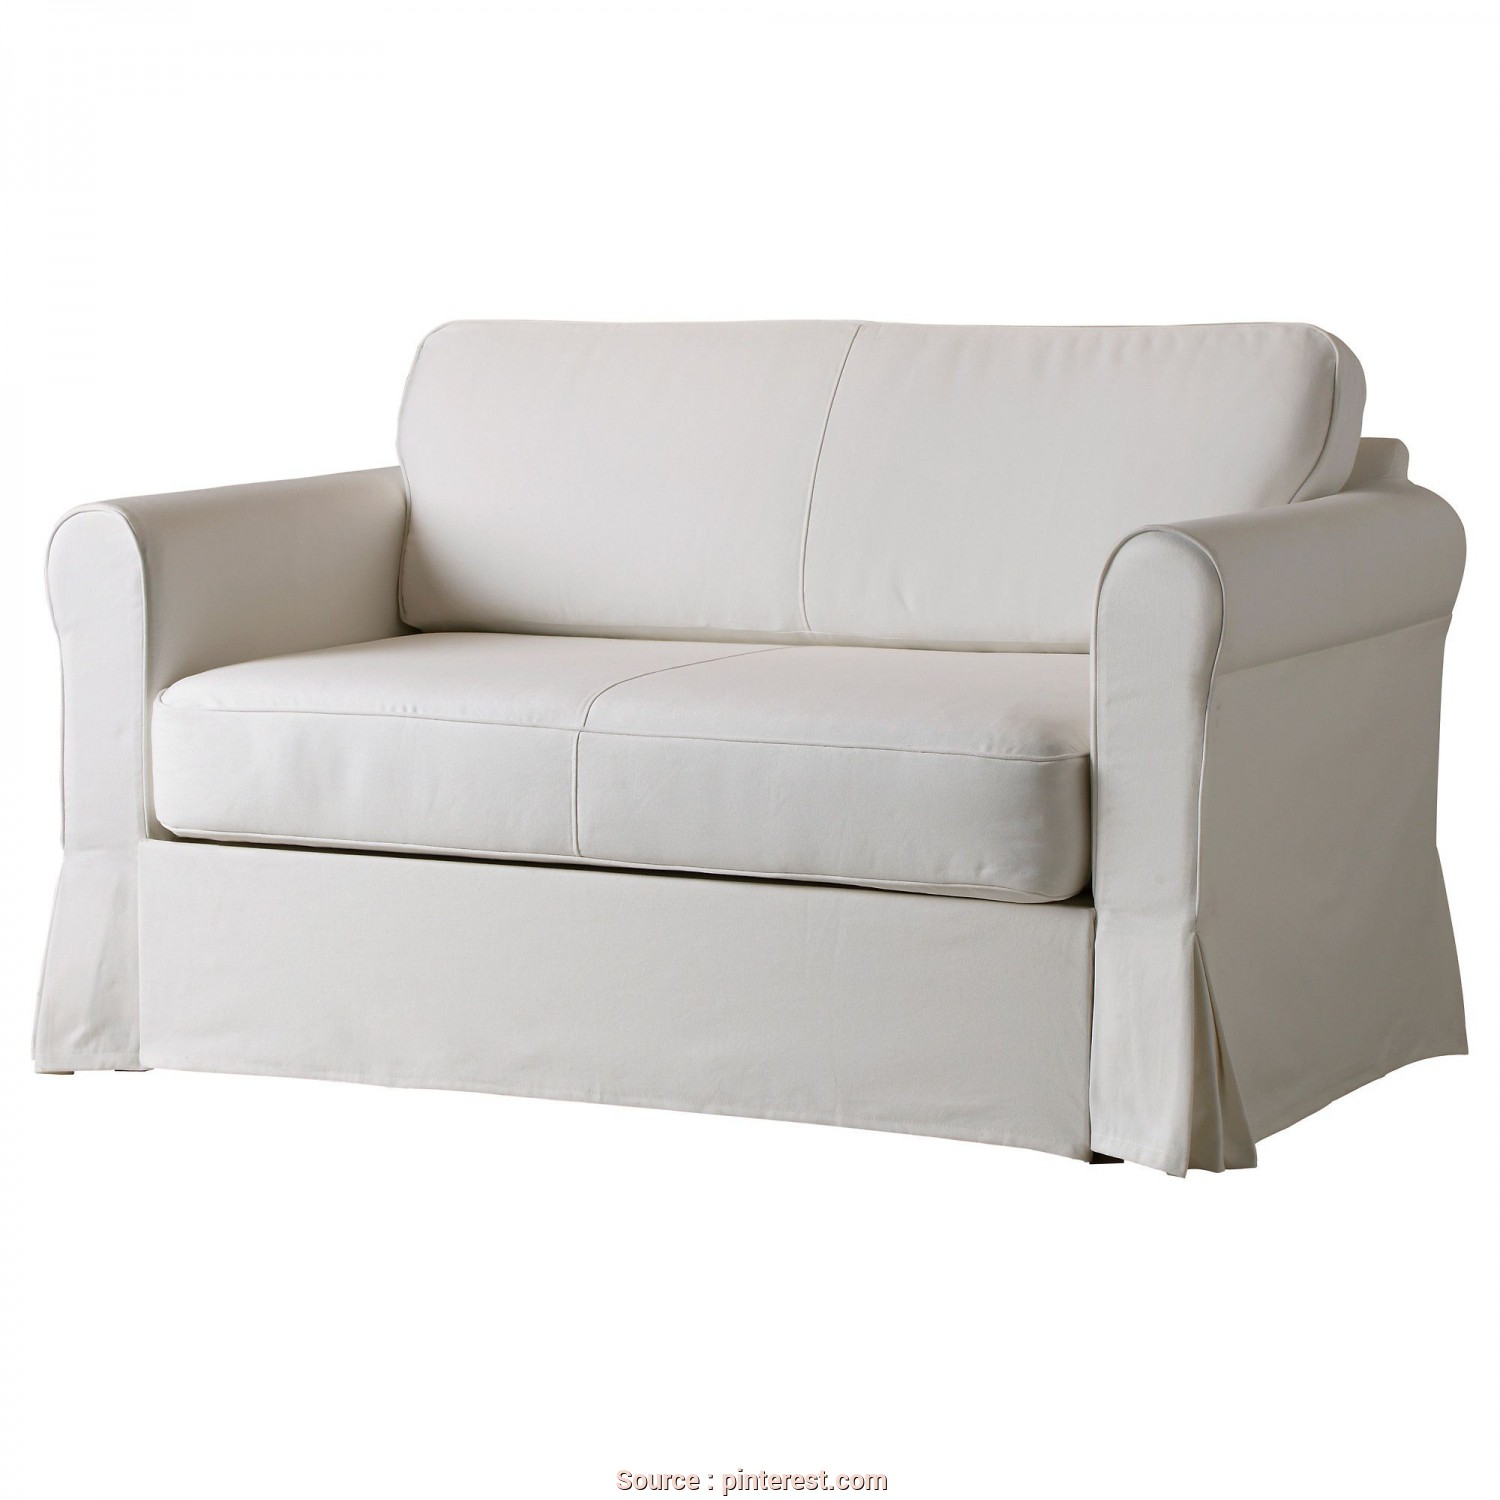 Futon Ikea Convertible, Modesto HAGALUND At Ikea. It Turns Into A Comfy, That Is Great, Guests Or Dogs